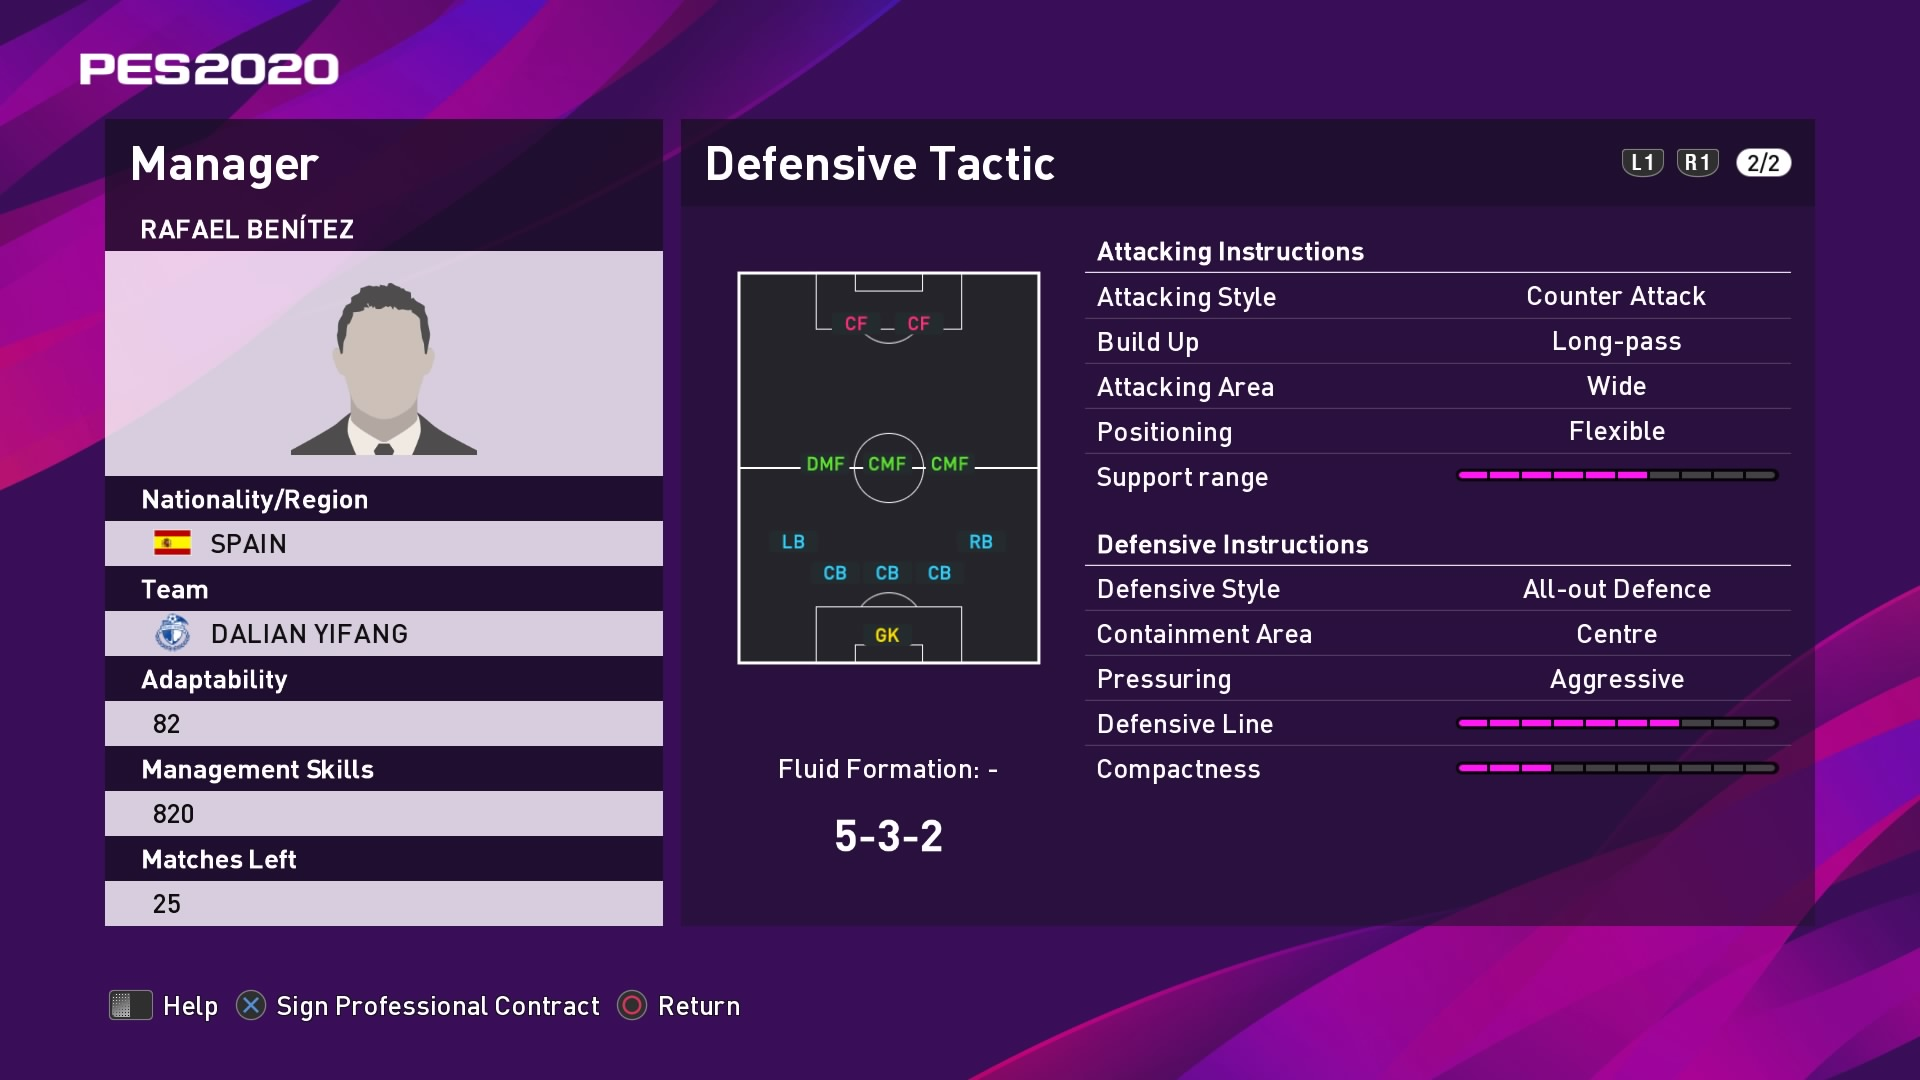 Rafael Benítez Defensive Tactic in PES 2020 myClub